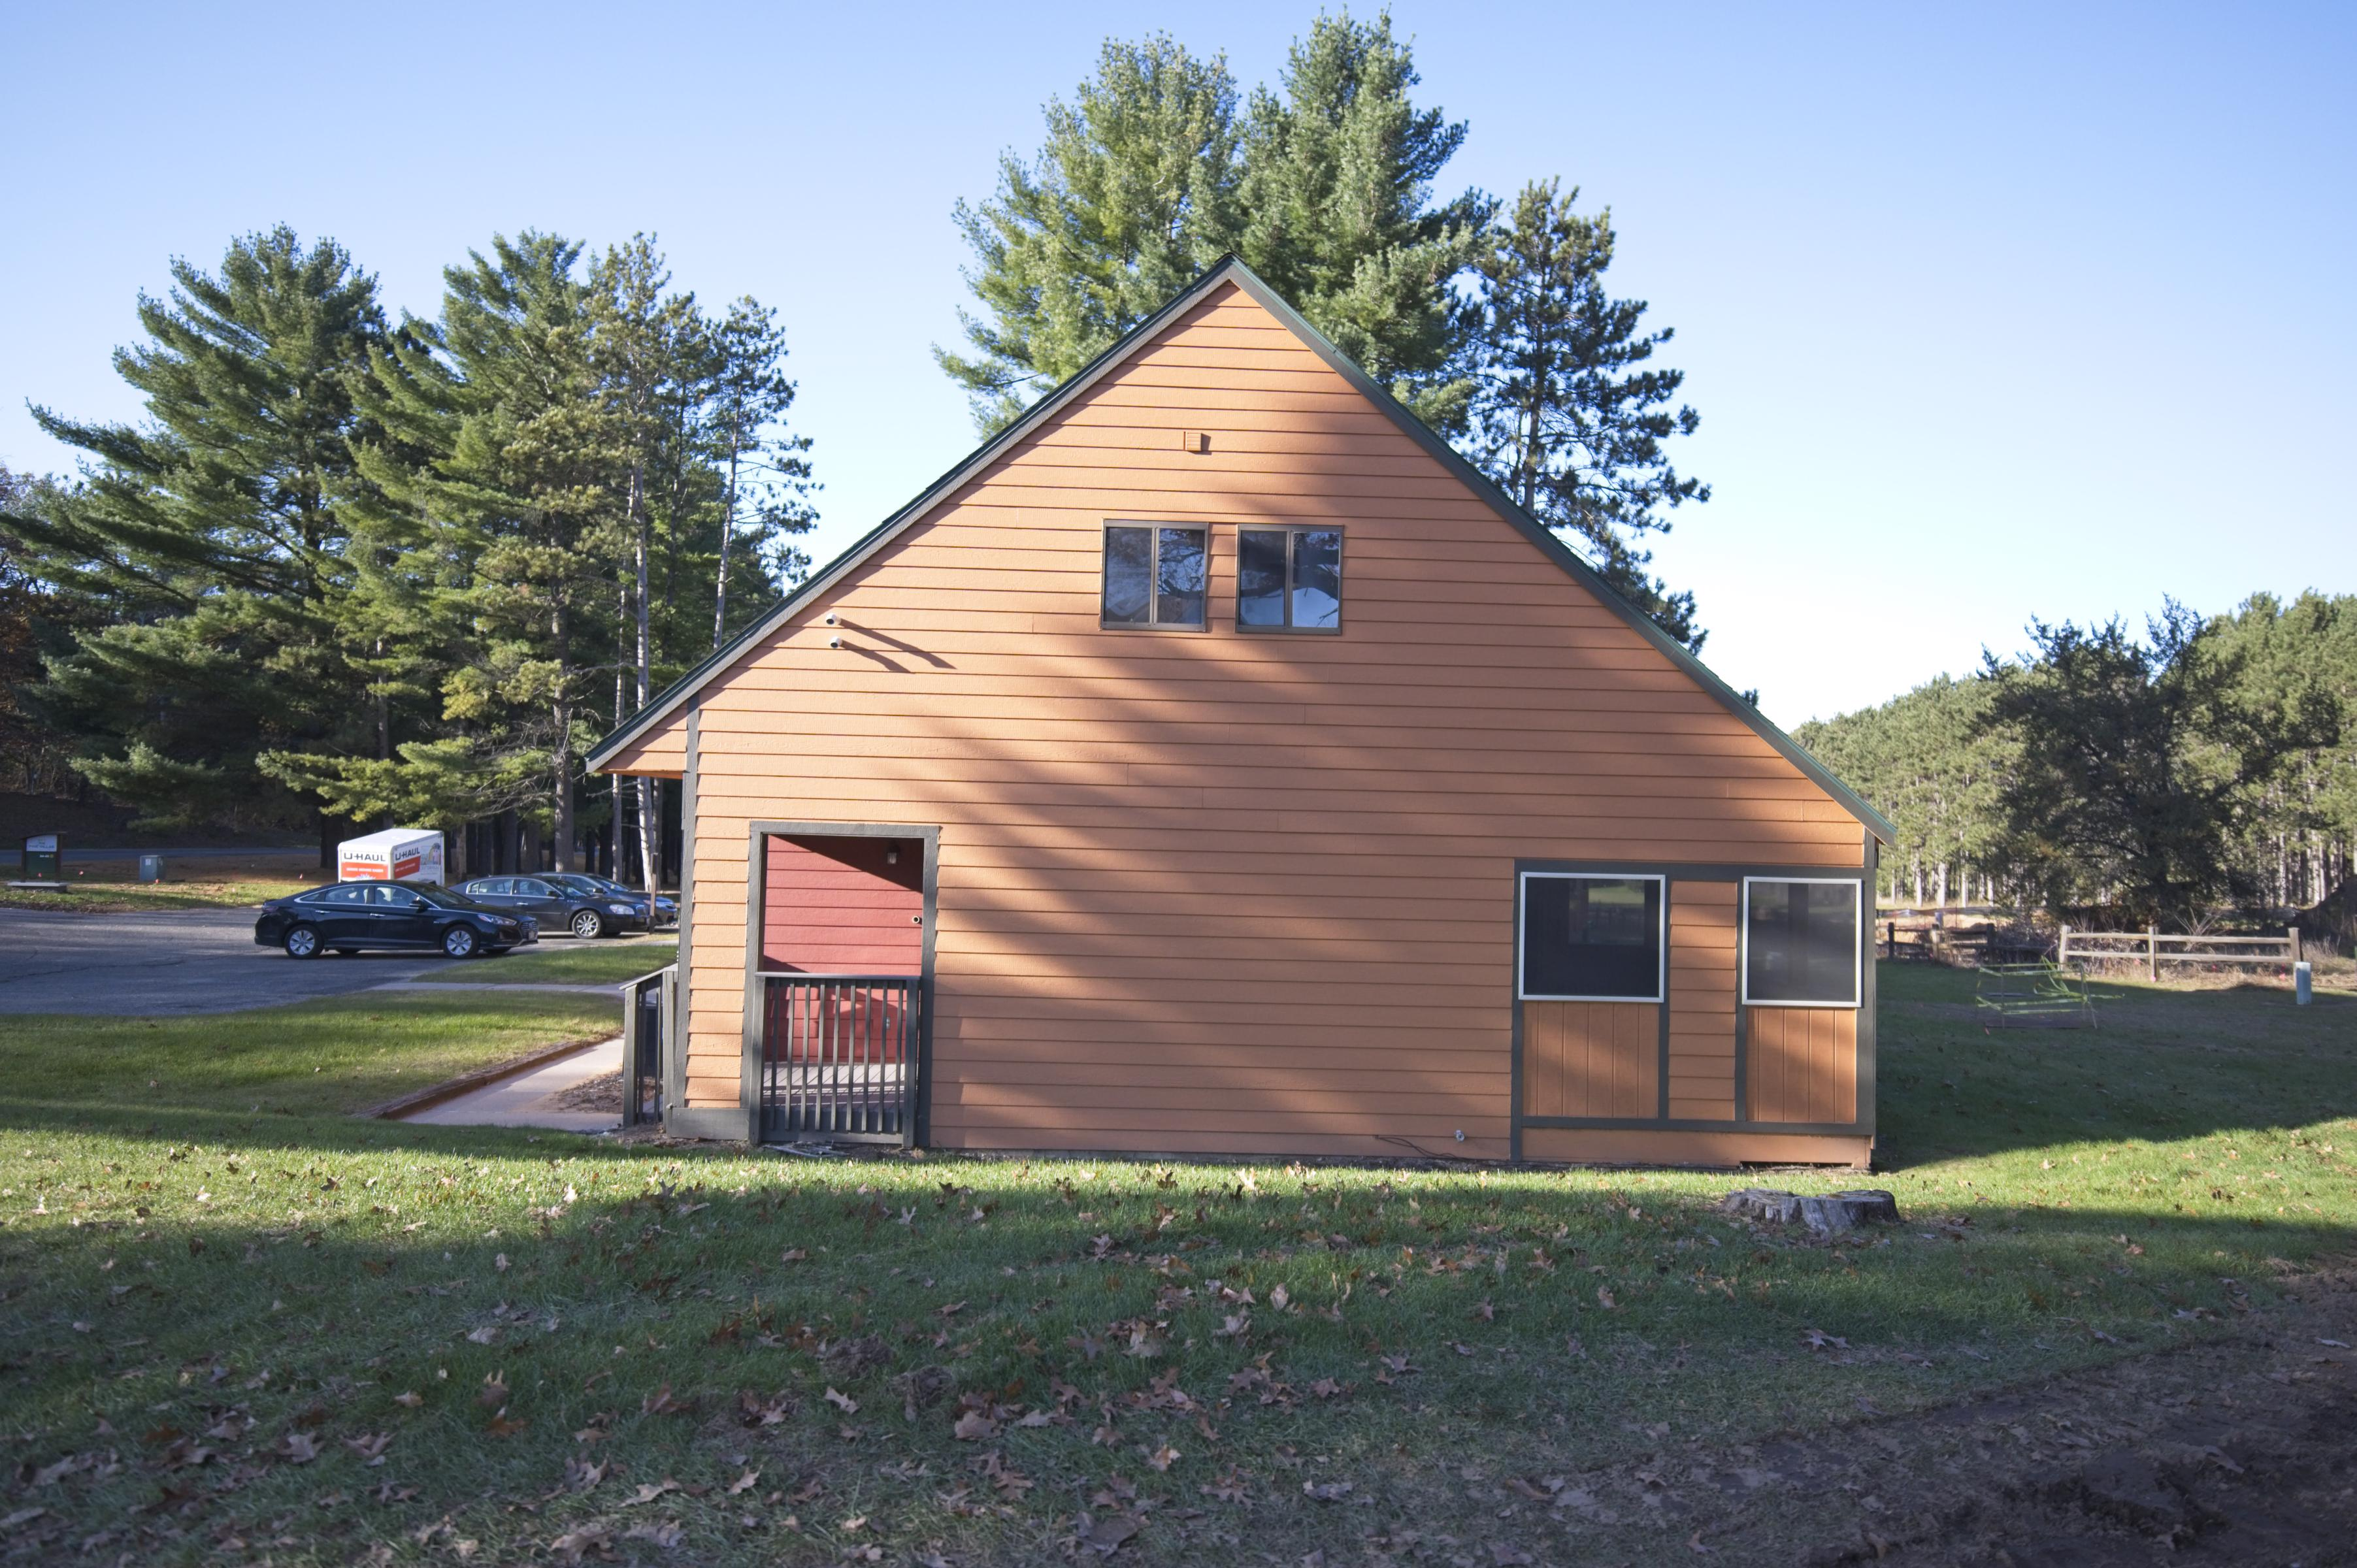 Sprightly Christmas Mountain Village 2 Bedroom Villas For Rent In Wisonsin Dells Wisconsin United States See 227 reviews, articles, and 76 photos of christmas mountain, ranked no.18 on tripadvisor among 45 attractions in wisconsin dells. sprightly christmas mountain village 2